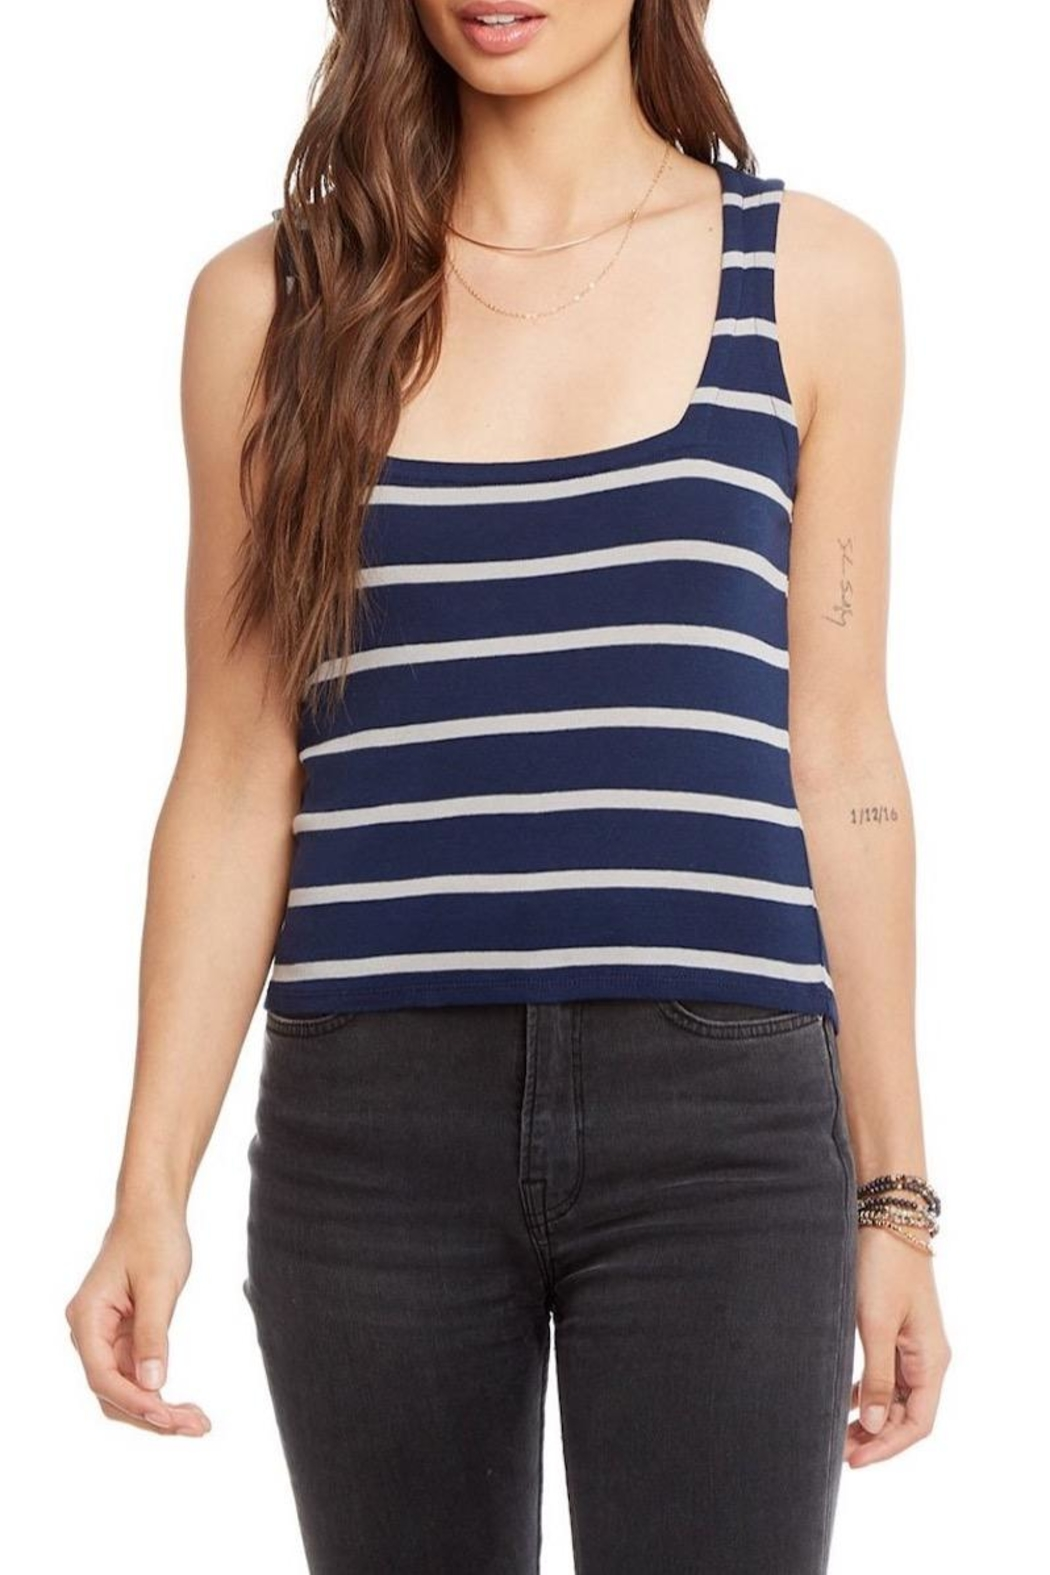 Chaser Square Neck Tank - Main Image